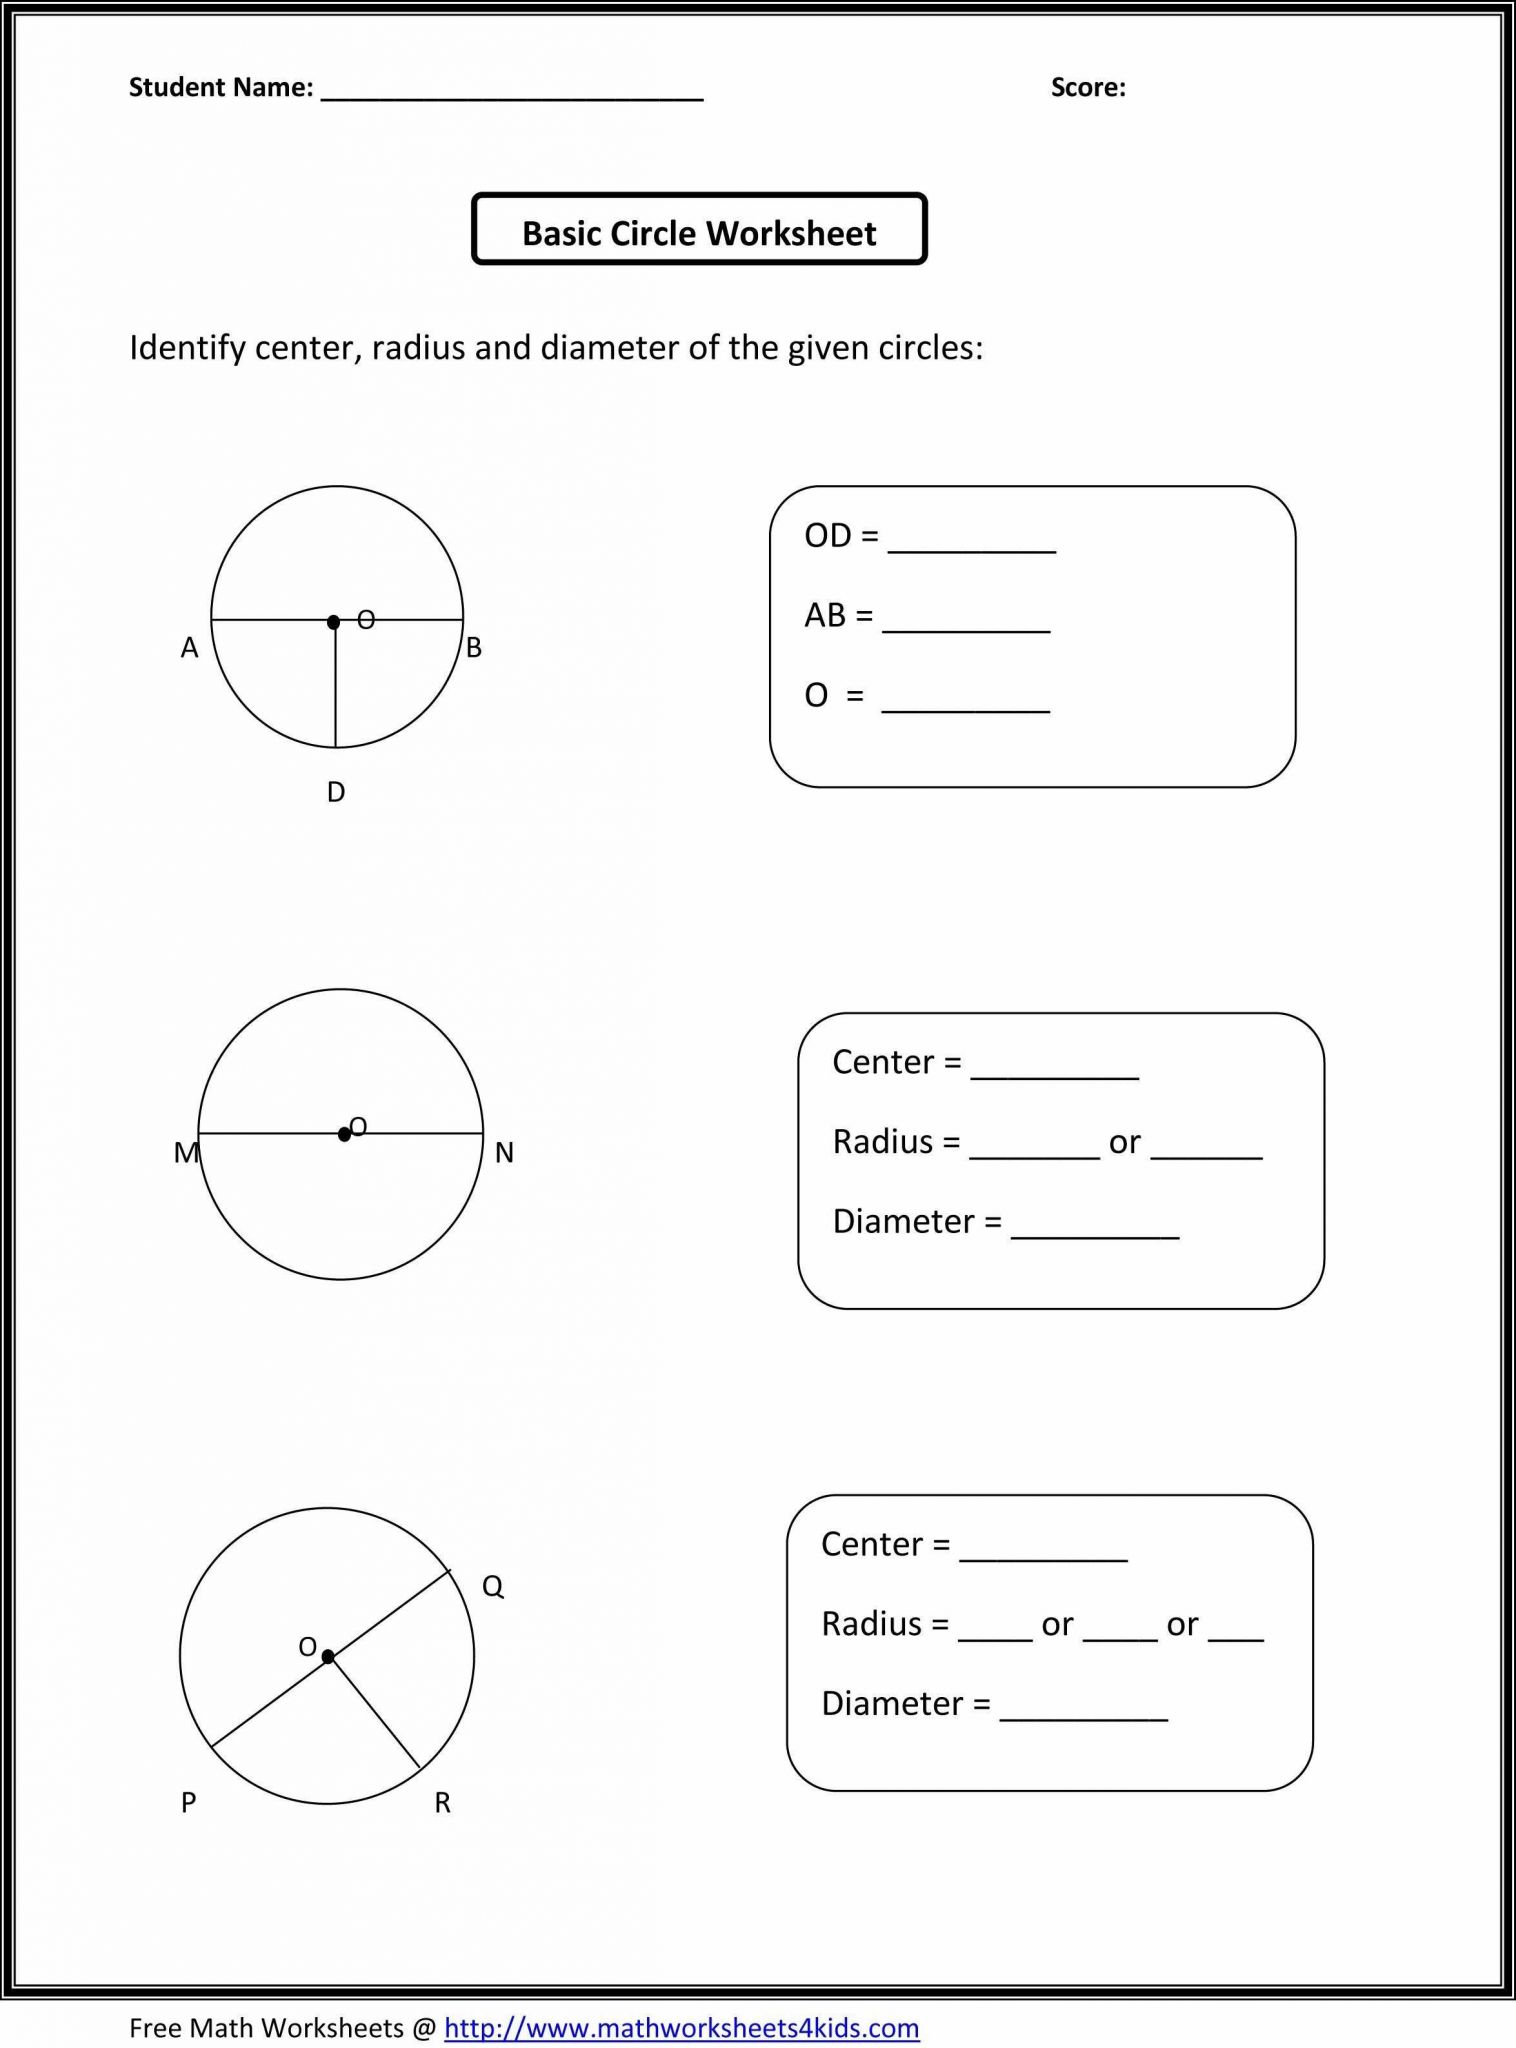 Graphing Systems Of Linear Inequalities Worksheet Answers